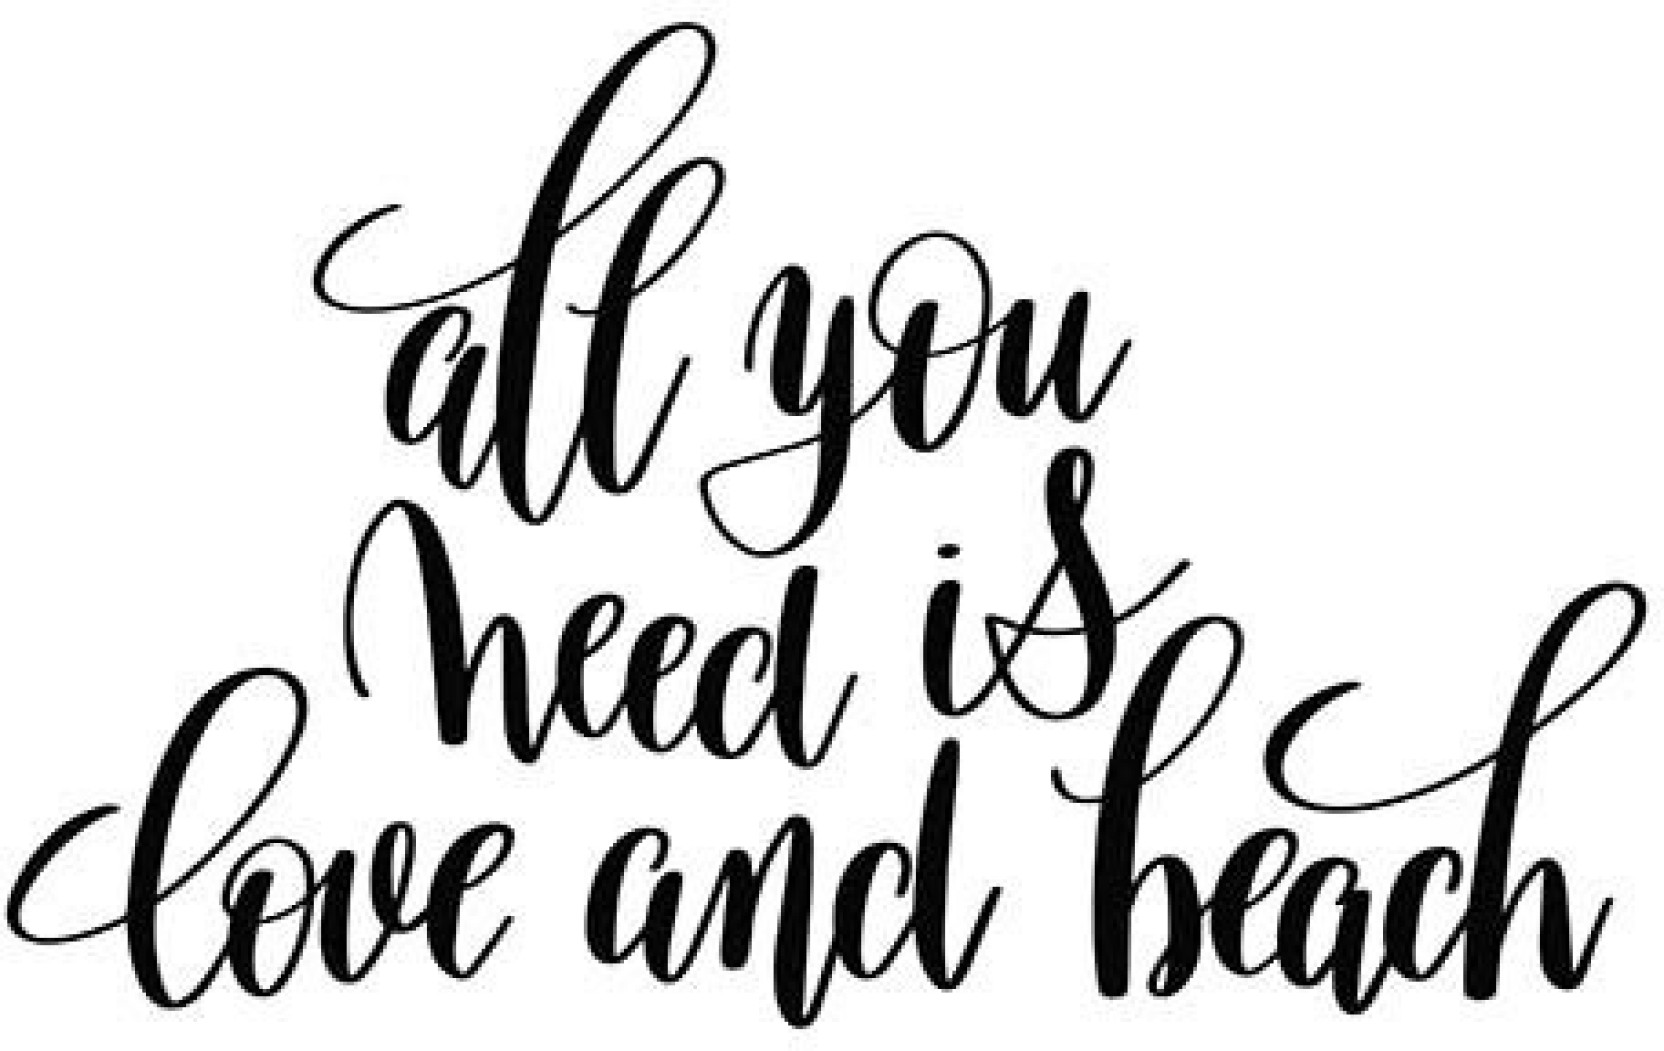 Posters all you need is love and beach quote printed poster funny poster inspirational posters motivational posters funny quotes posters posters with